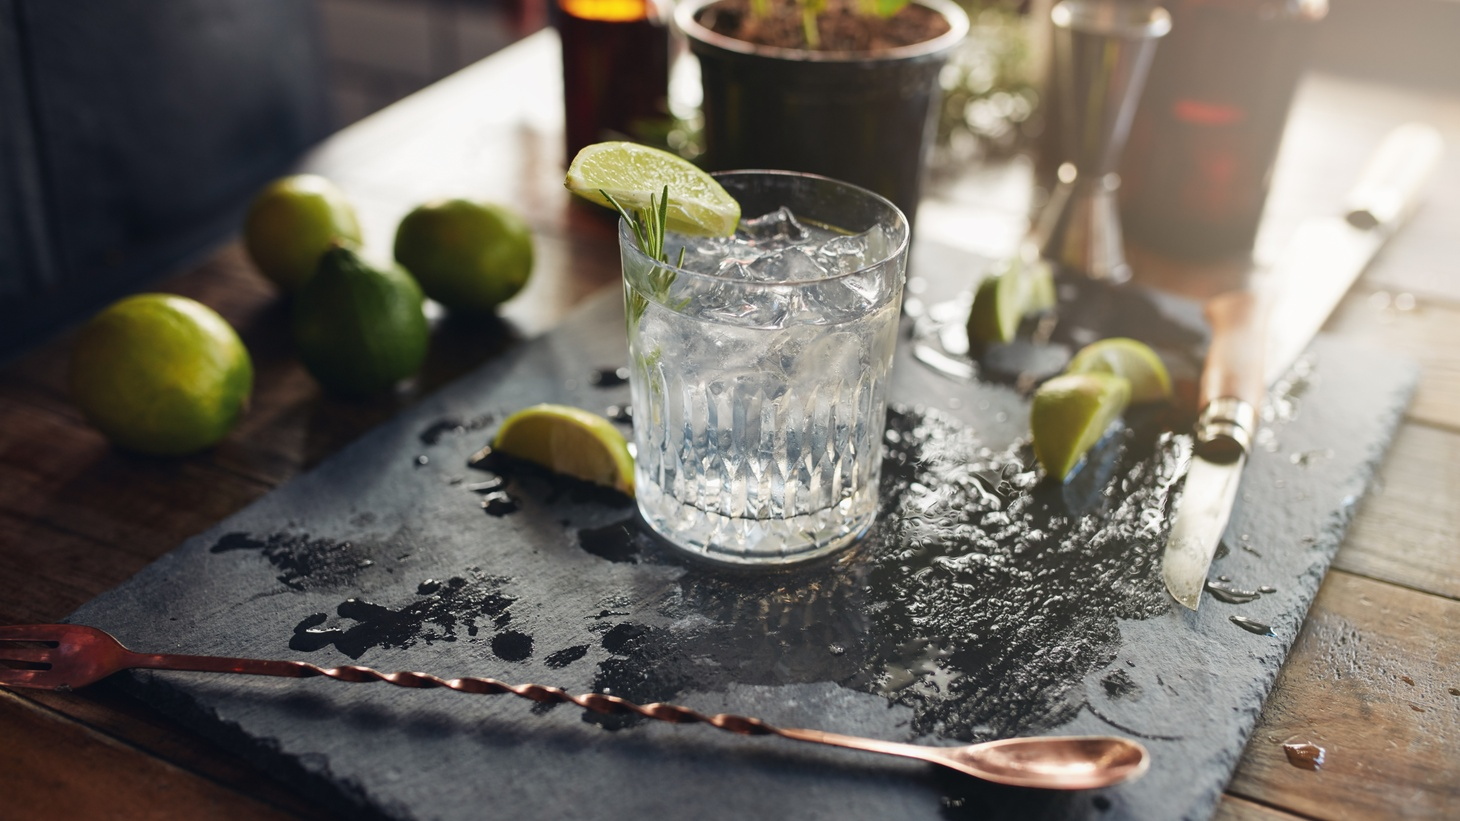 In his quest to perfect the gin and tonic, Dave Arnold recommends adding a pinch of salt, keeping gin in the freezer, and for the overly ambitious, making tonic.